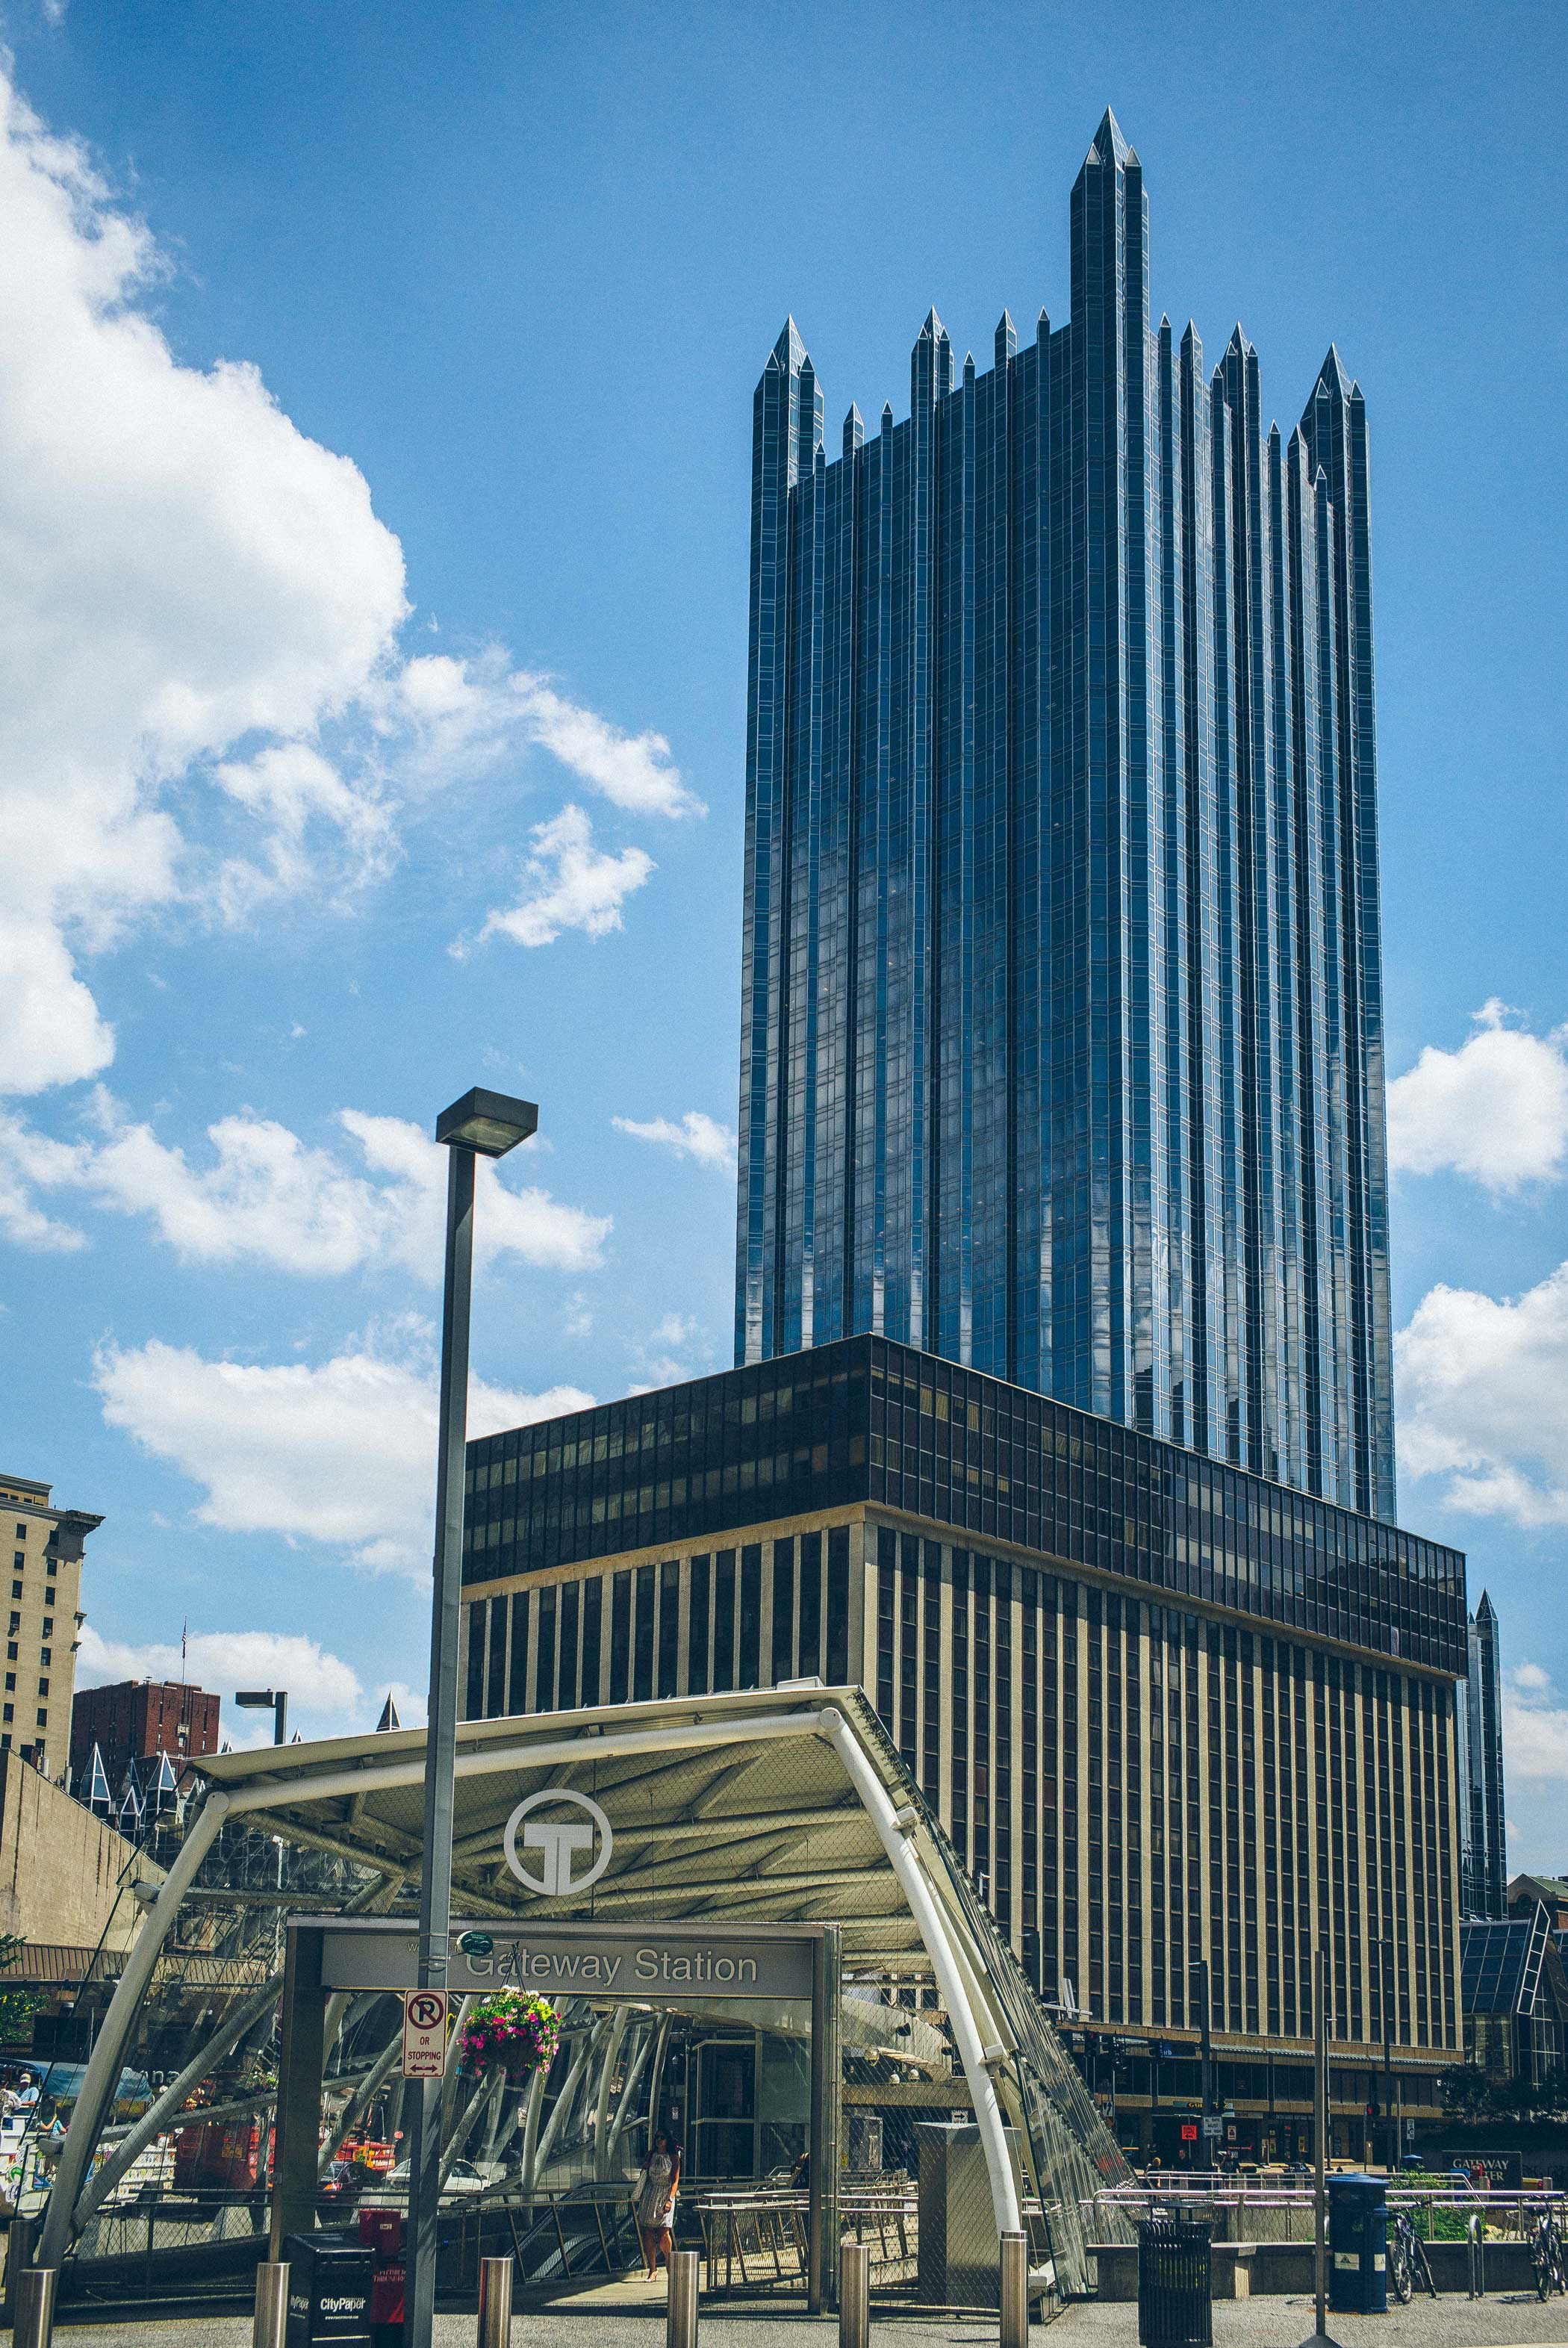 Gateway Pittsburgh Gateway Light Rail Station with PPG Place behind it on June 23, 2015.